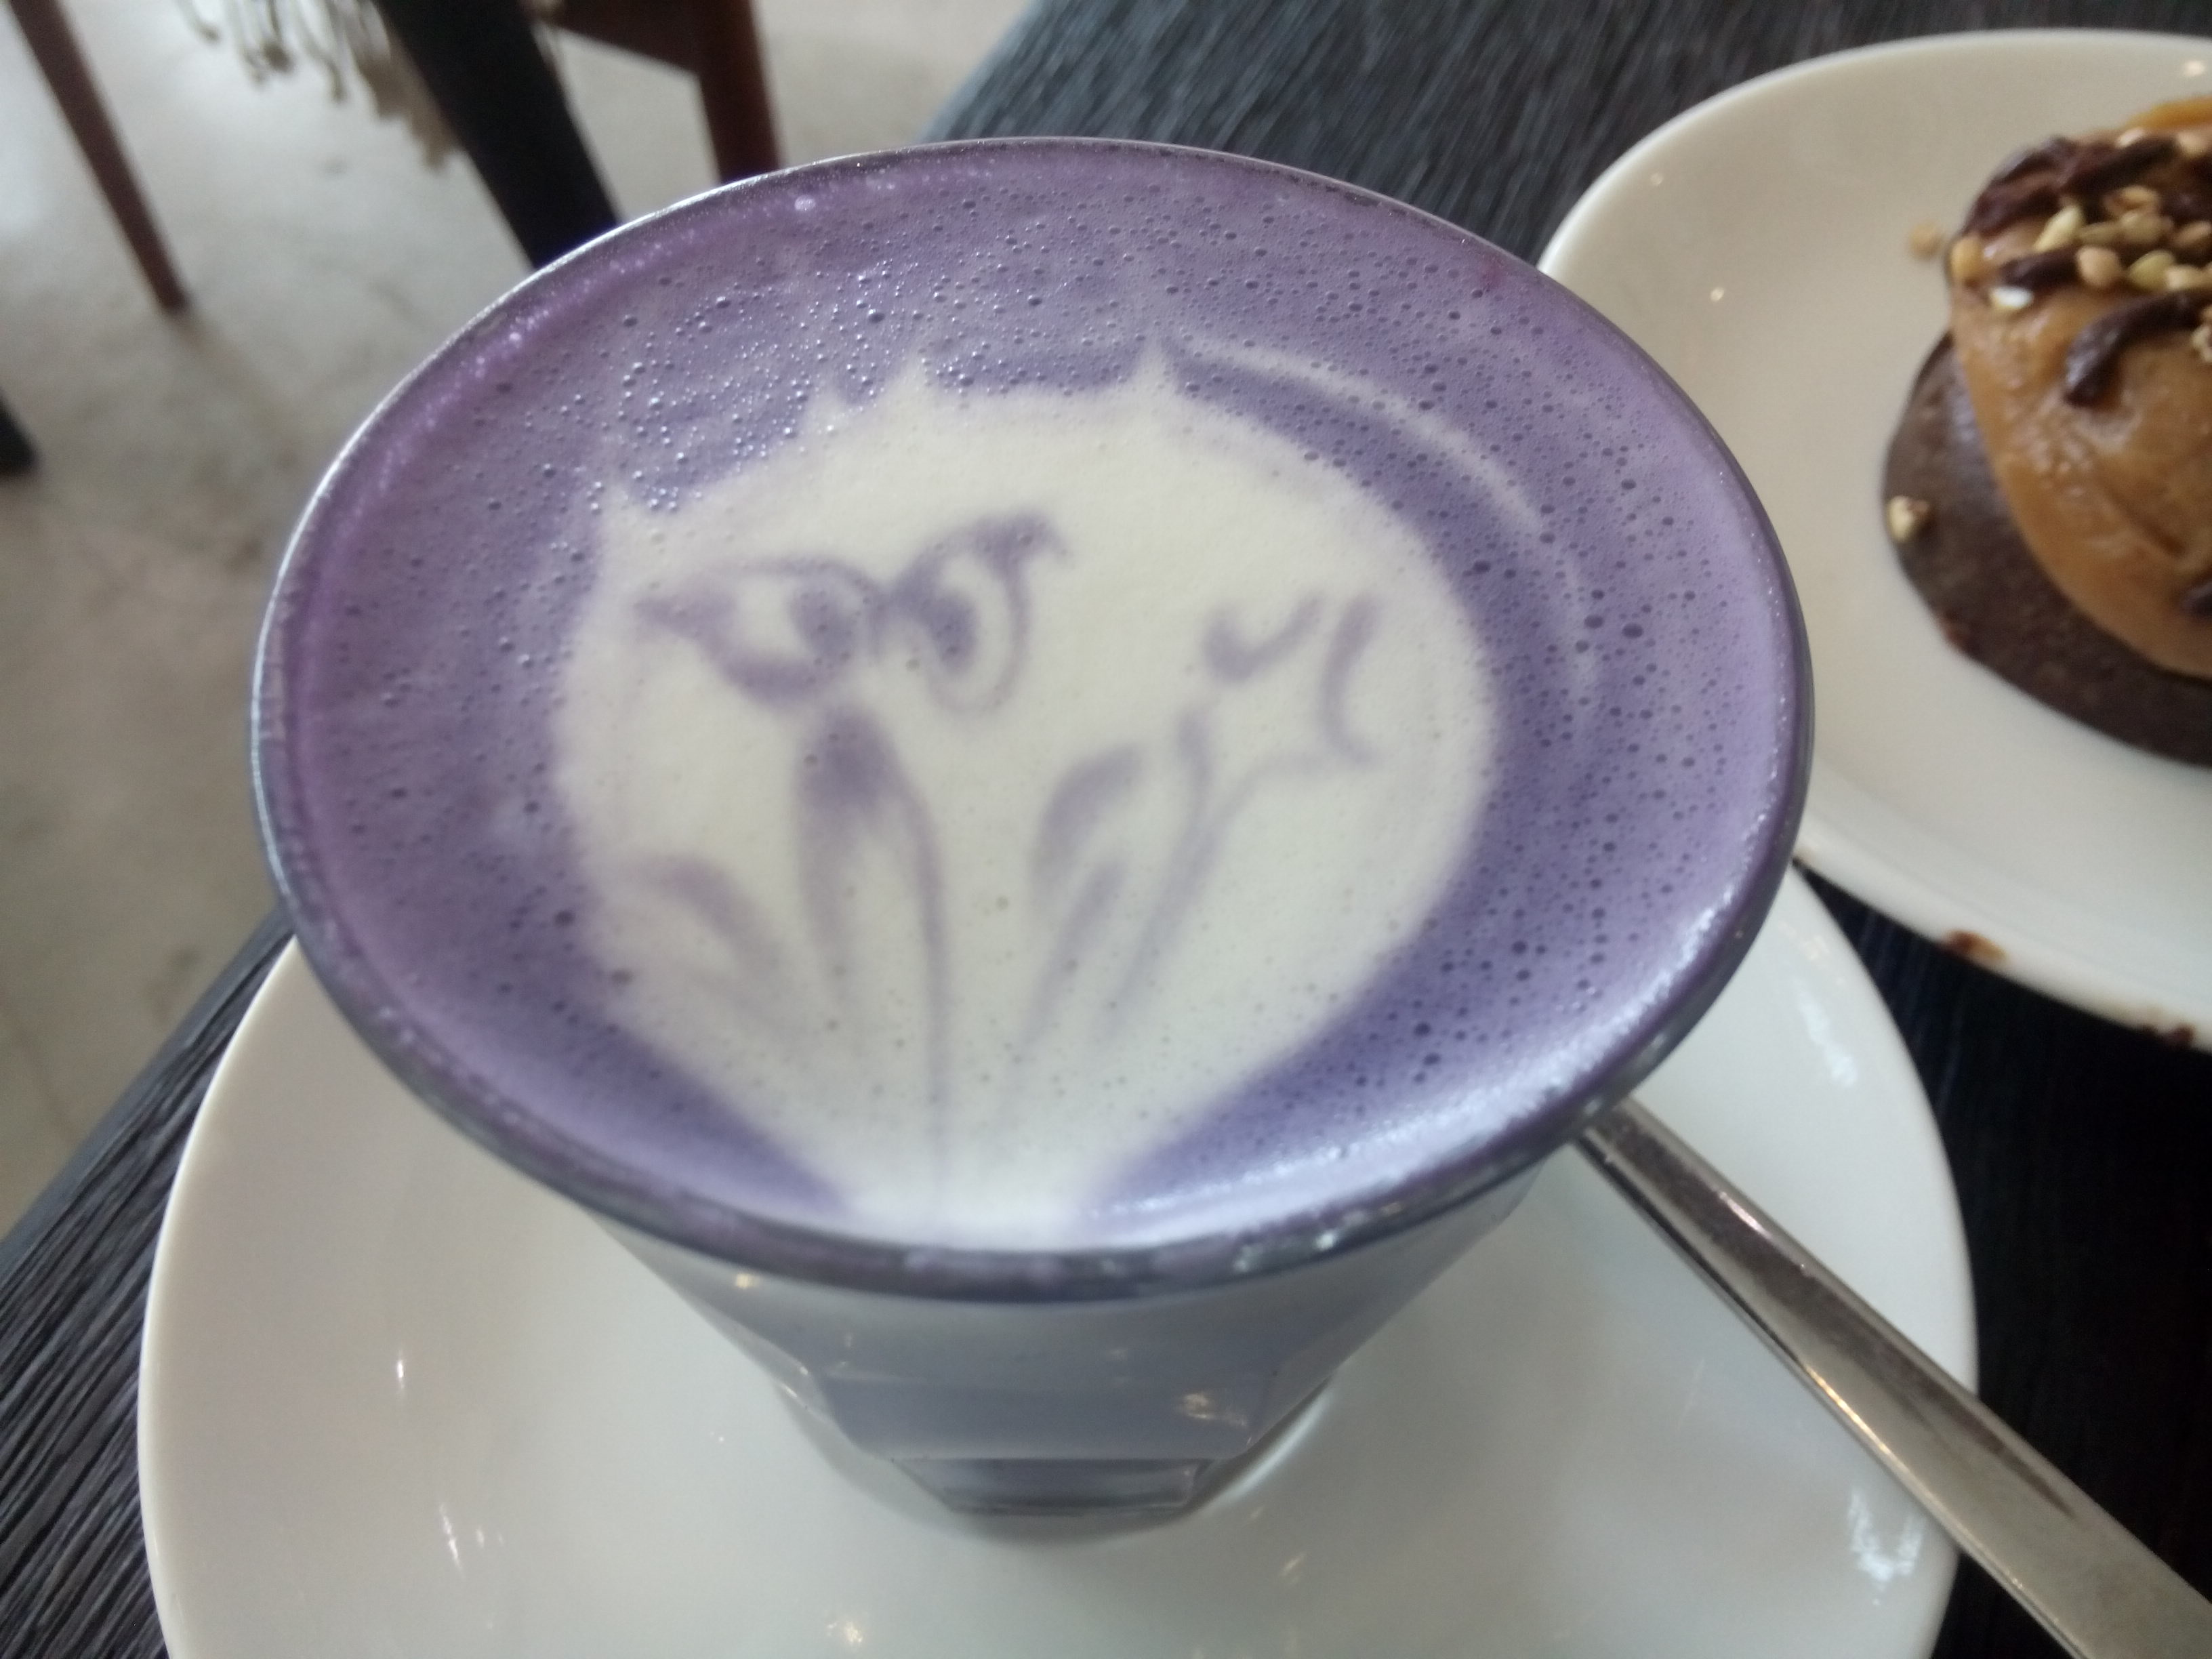 Purple drink with smudged cat latte art that now looks like a ghost